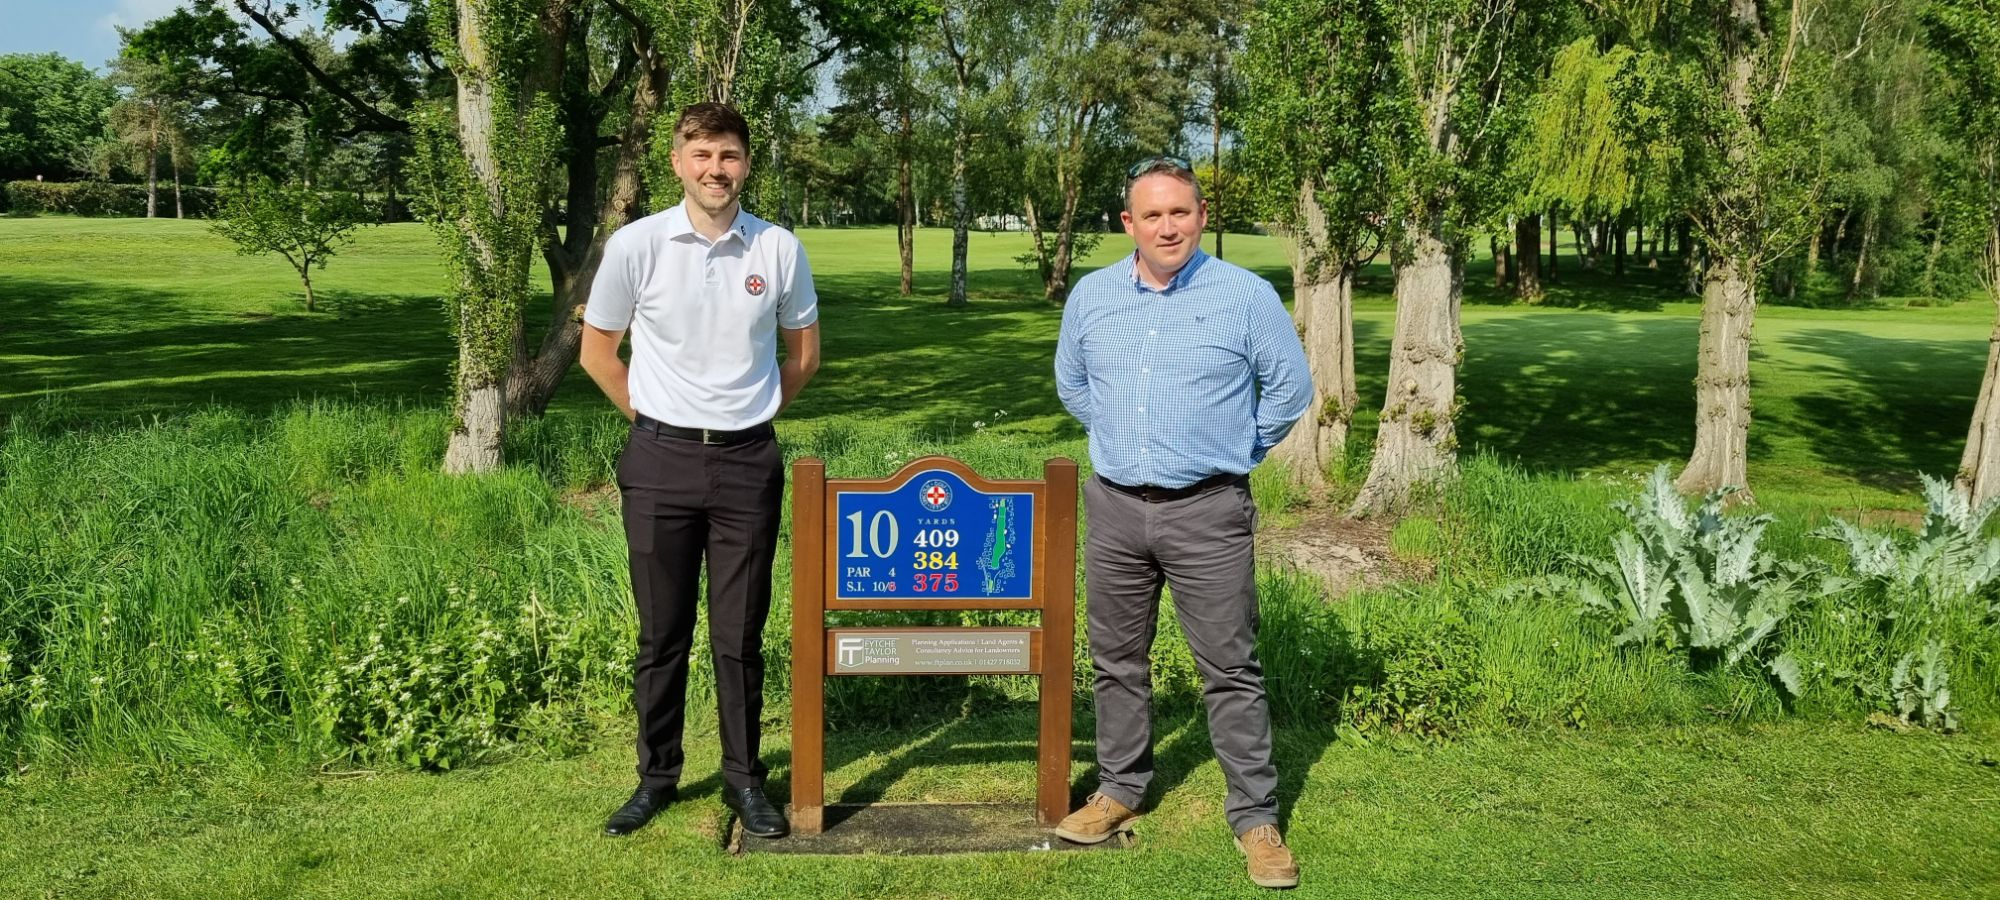 New Sponsorship Deal Announced at Lincoln Golf Club - Fytche-Taylor Planning Ltd Managing Director Oliver Fytche-Taylor with club manager Louis Booth